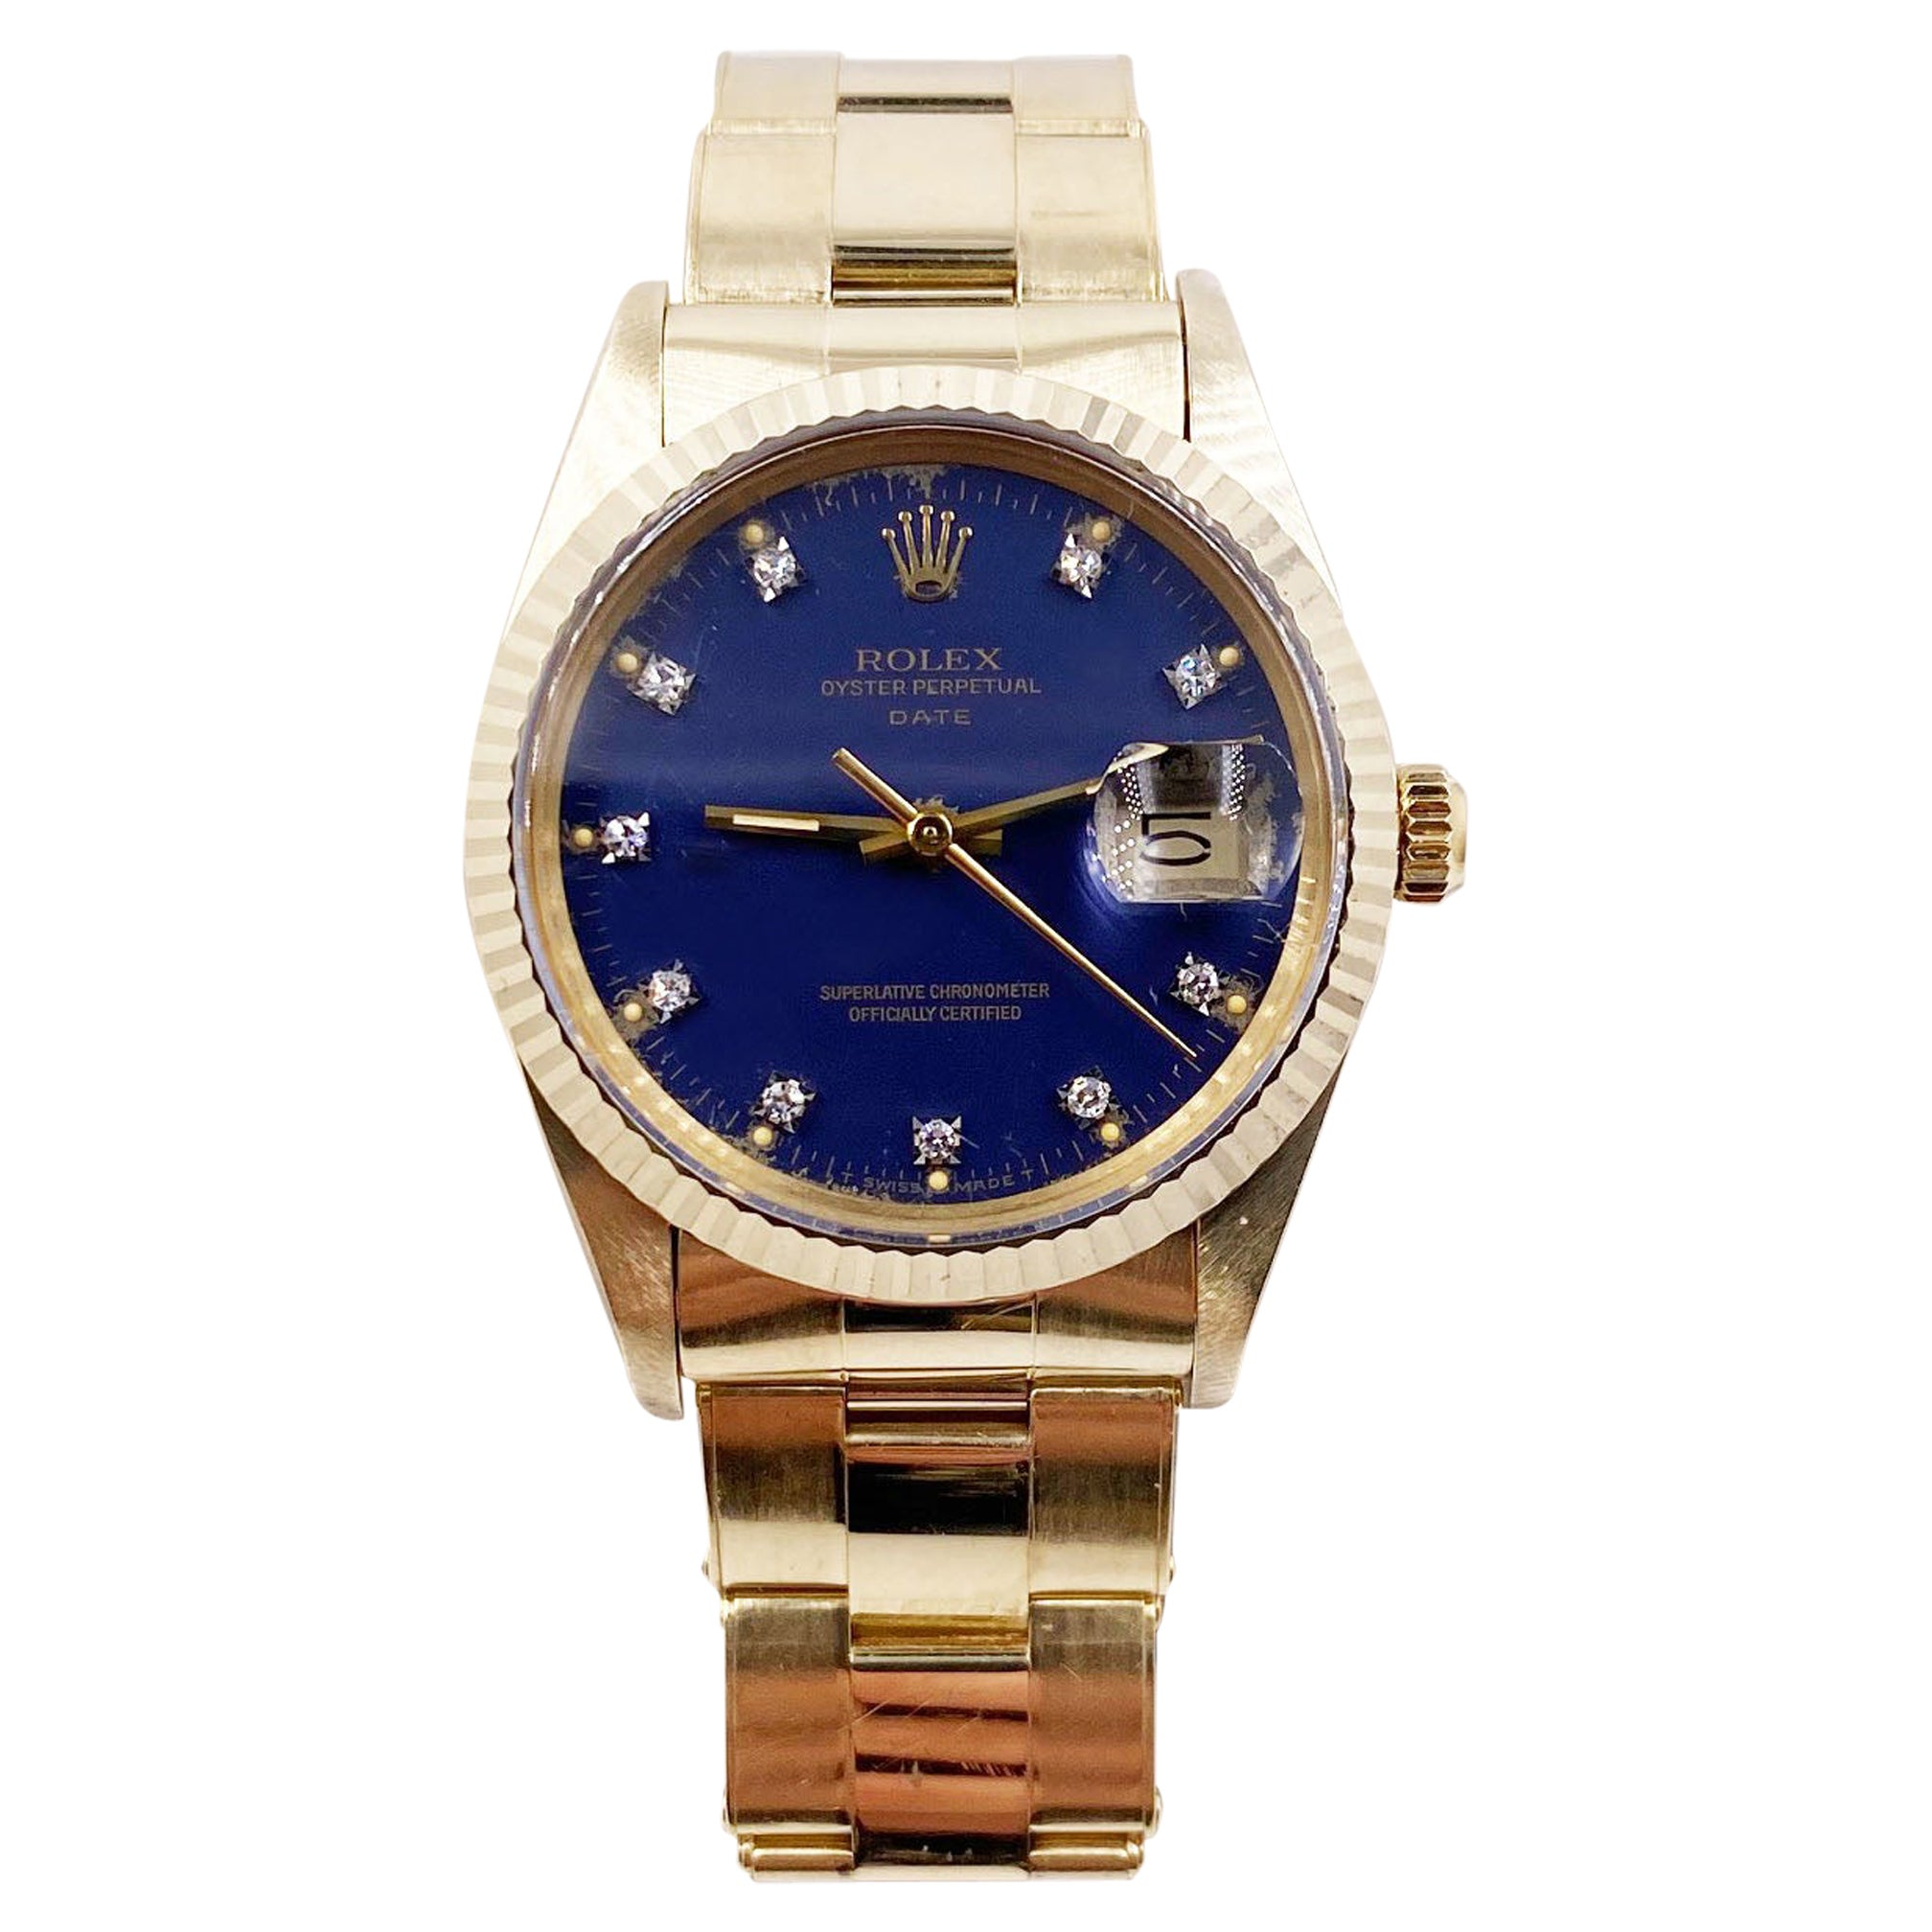 Rolex Date 15037 Blue Diamond Dial 14 Karat Gold Ford Box Papers Collectible